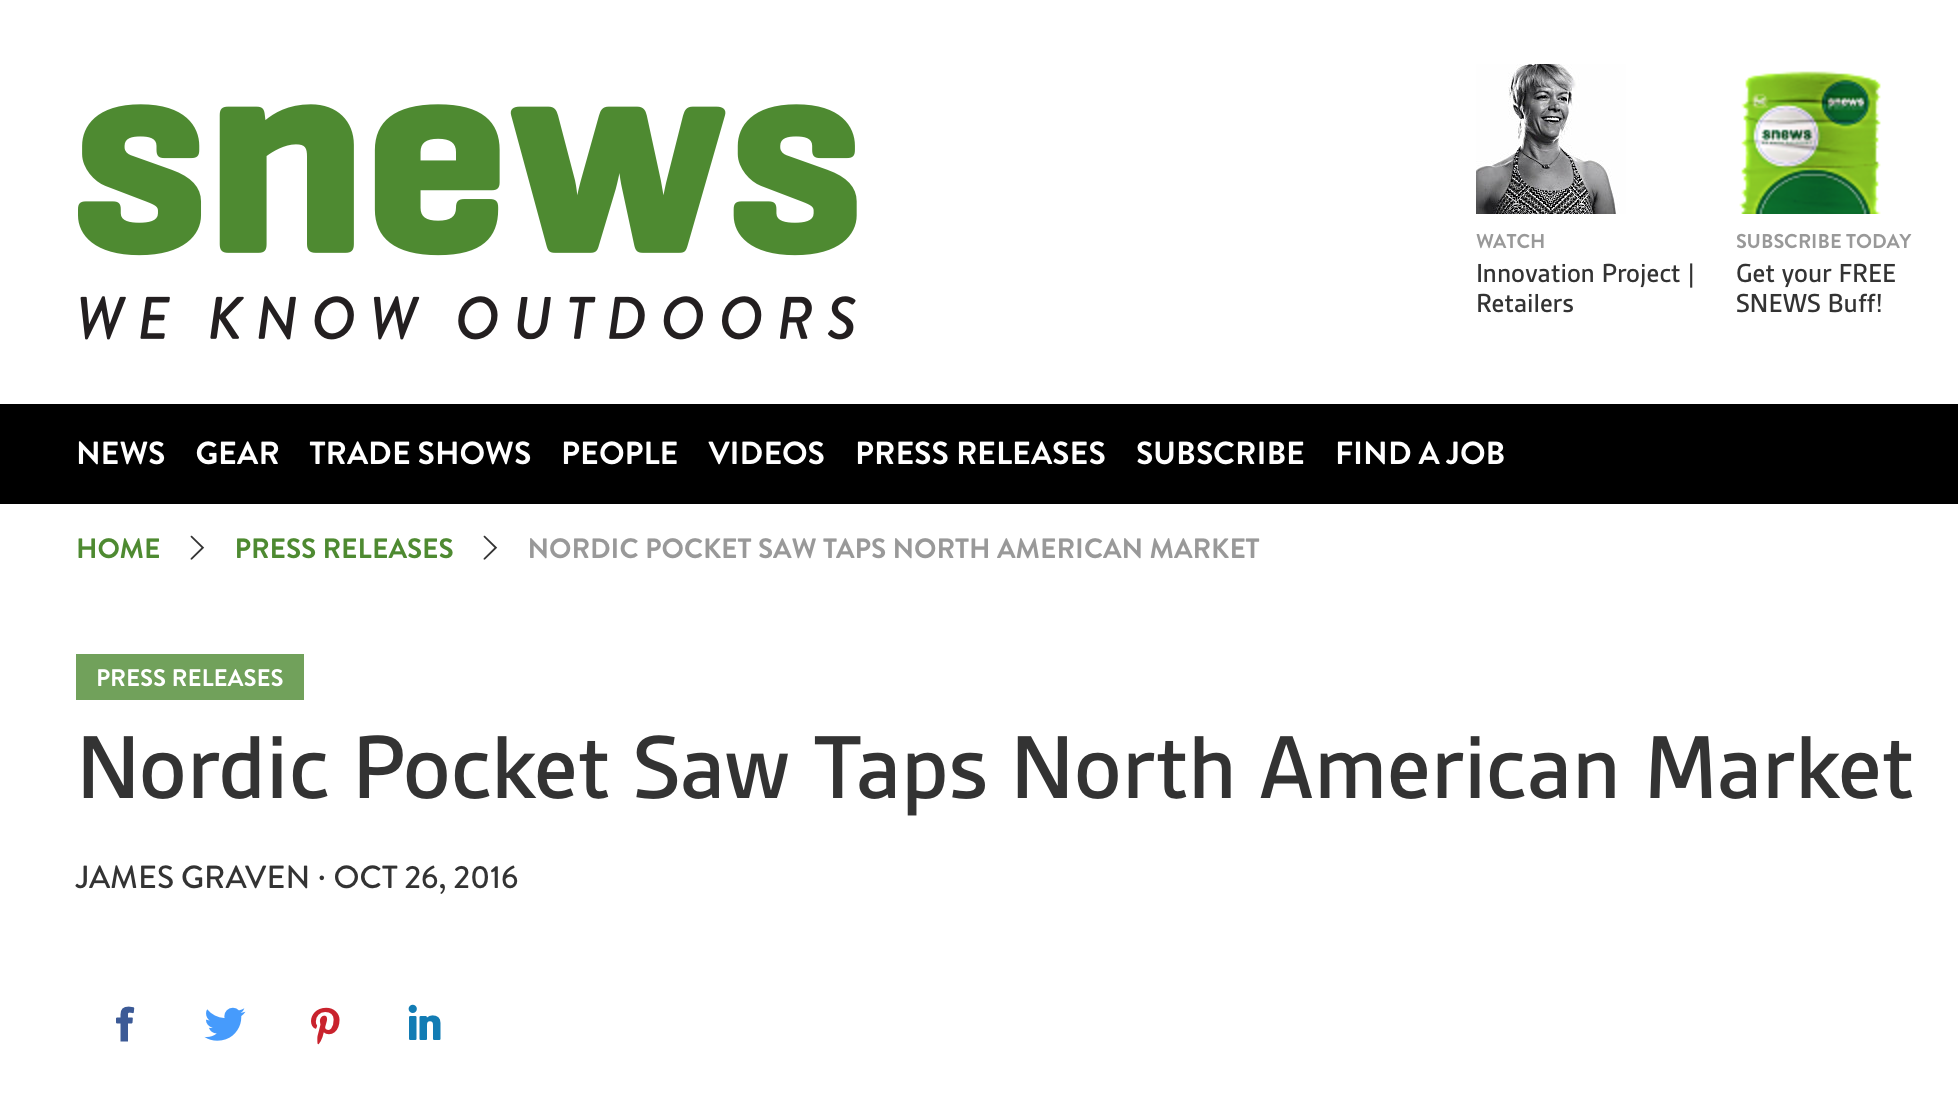 Nordic Pocket Saw Taps North American Market